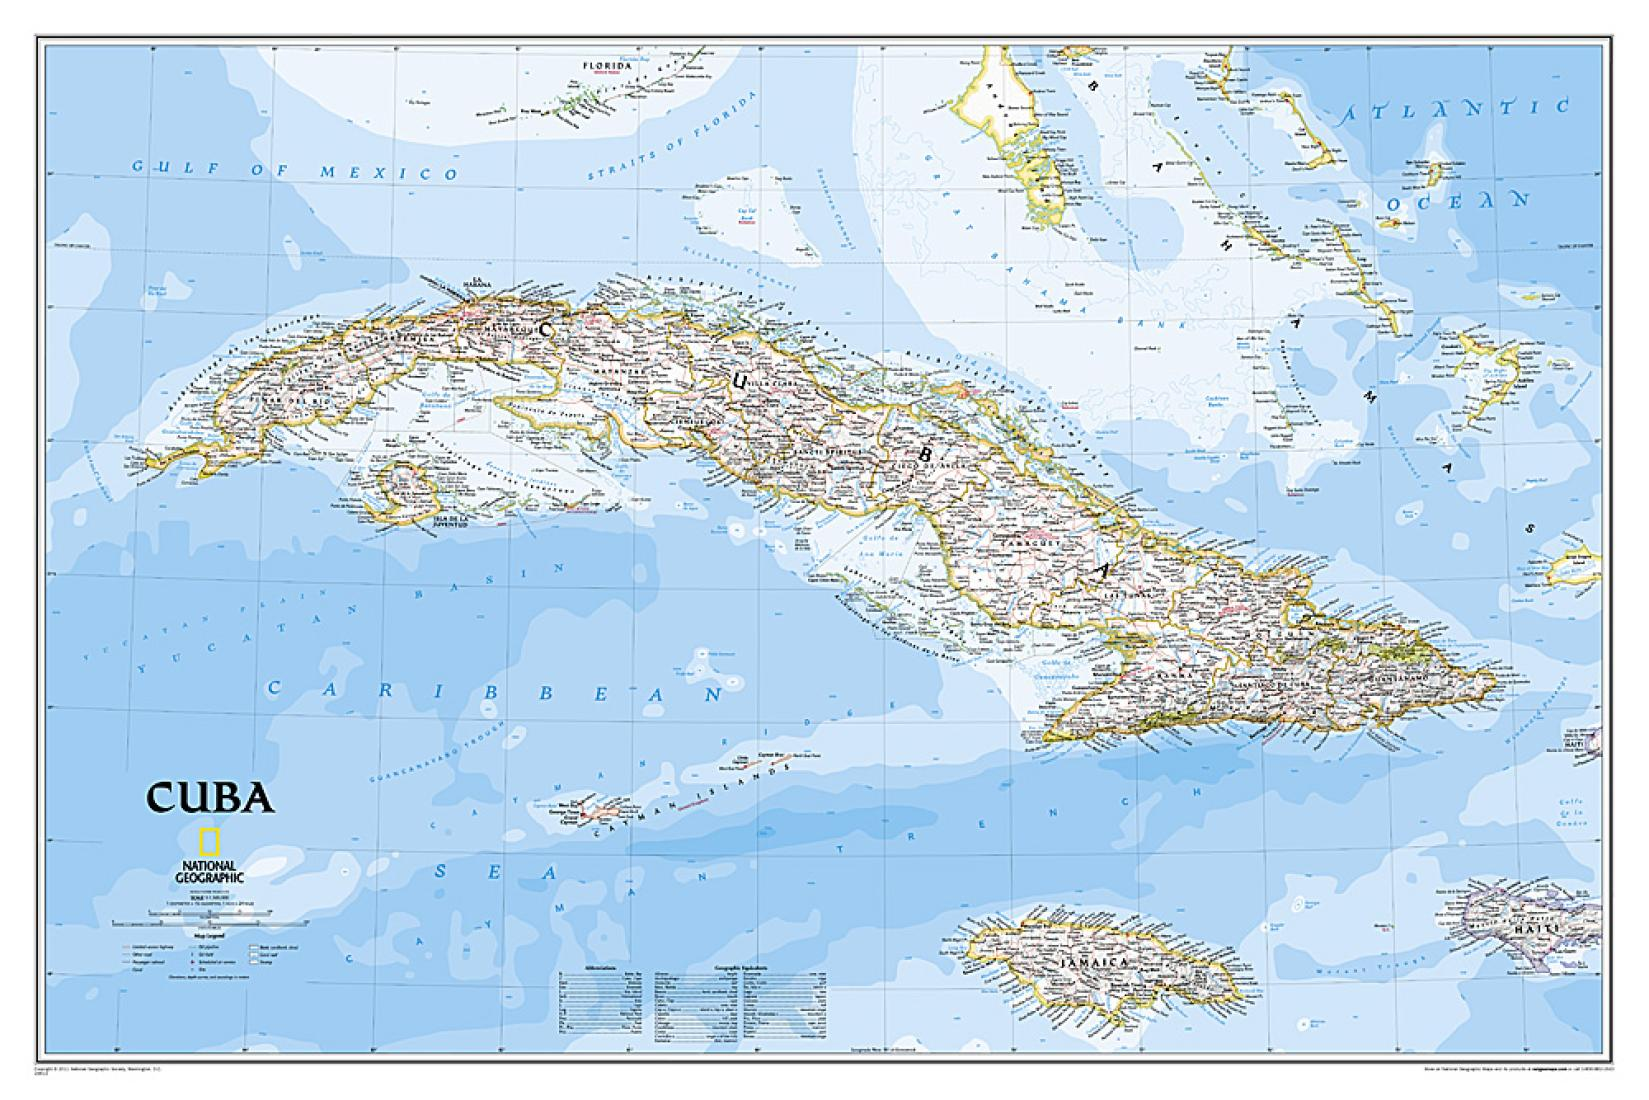 Cuba Clic Wall Map (36 x 24 inches) by National Geographic Maps Geographic Map Of Mexico on genetic map of mexico, generic map of mexico, climate map of mexico, 15 geographical features of mexico, political map of mexico, natural map of mexico, geography of mexico, geophysical map of mexico, environmental map of mexico, map of cancun mexico, bing maps of mexico, blank map of mexico, tectonic map of mexico, demographic map of mexico, topological map of mexico, qualitative map of mexico, detailed map of mexico, territorial map of mexico, artistic map of mexico, geology map of mexico,